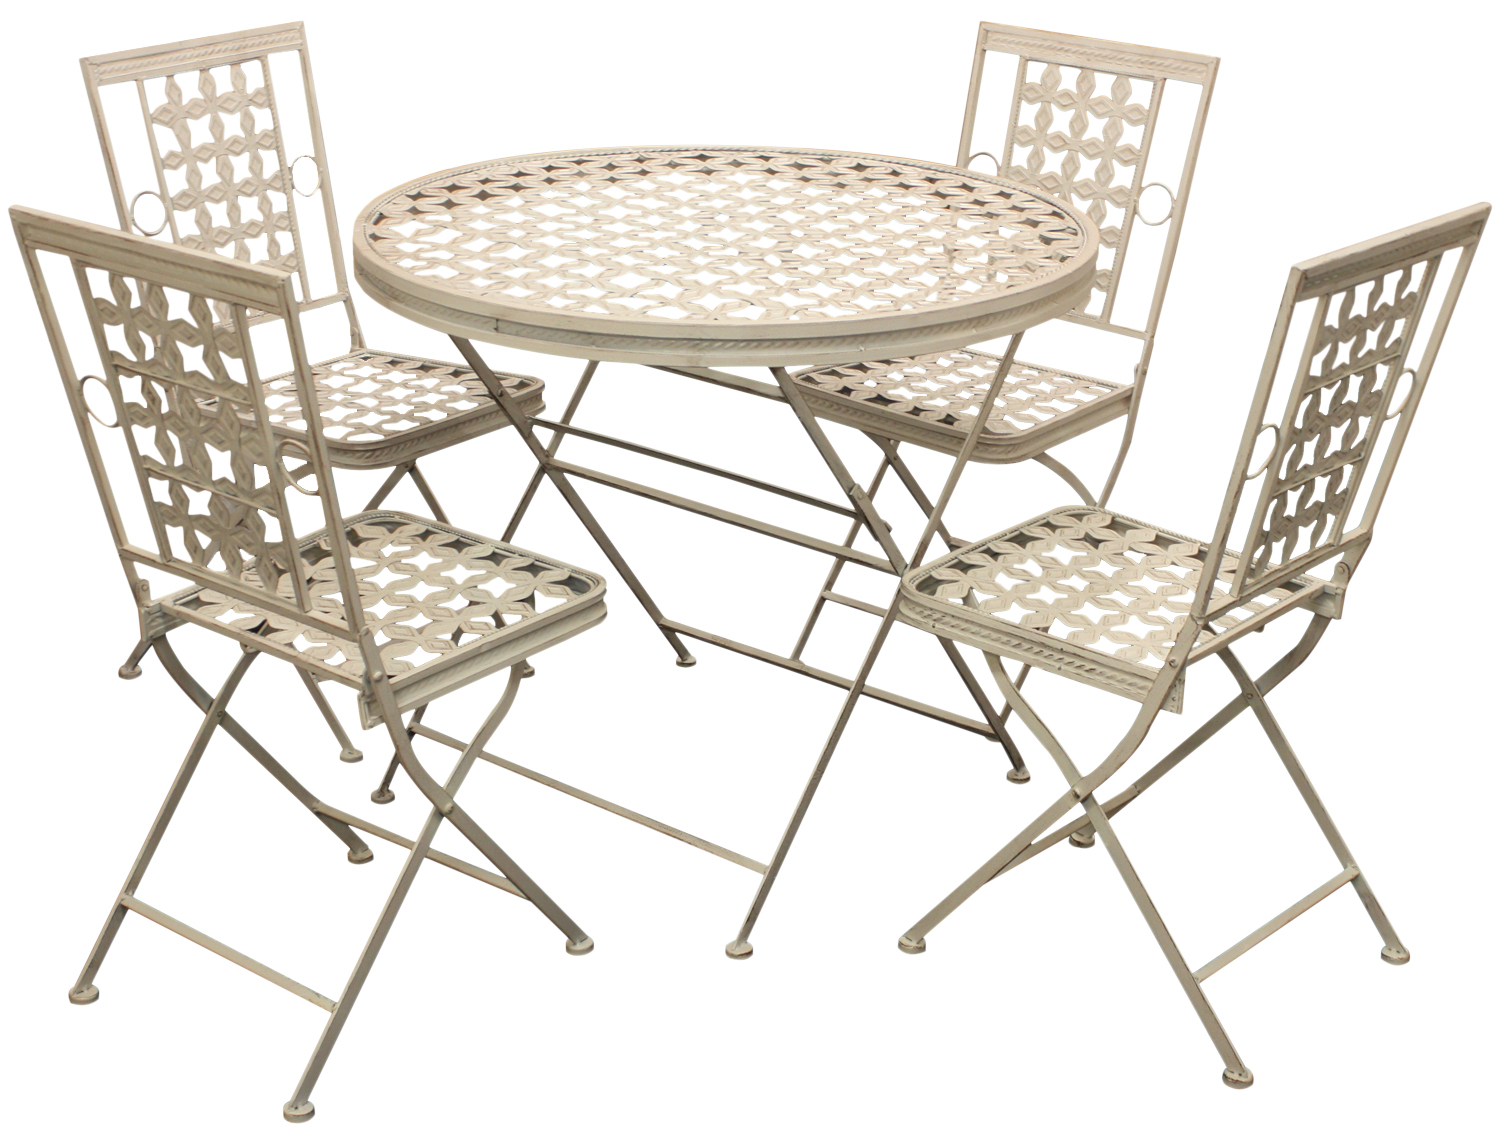 Woodside folding metal outdoor garden patio dining table for Metal garden table and chairs